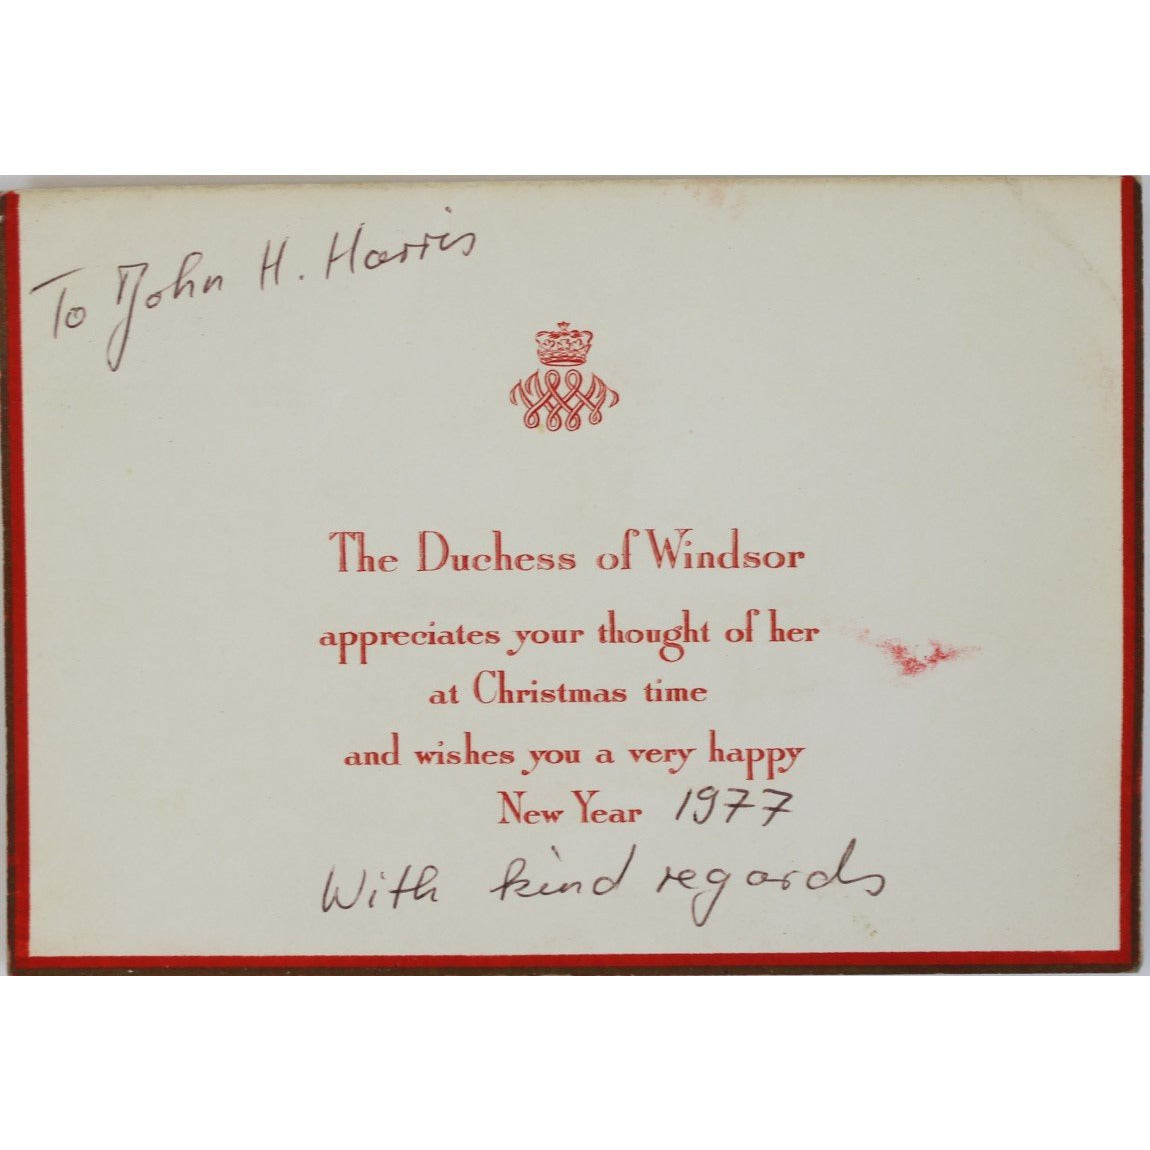 The Duchess of Windsor Wishes you a Merry Christmas and a Happy New Ye